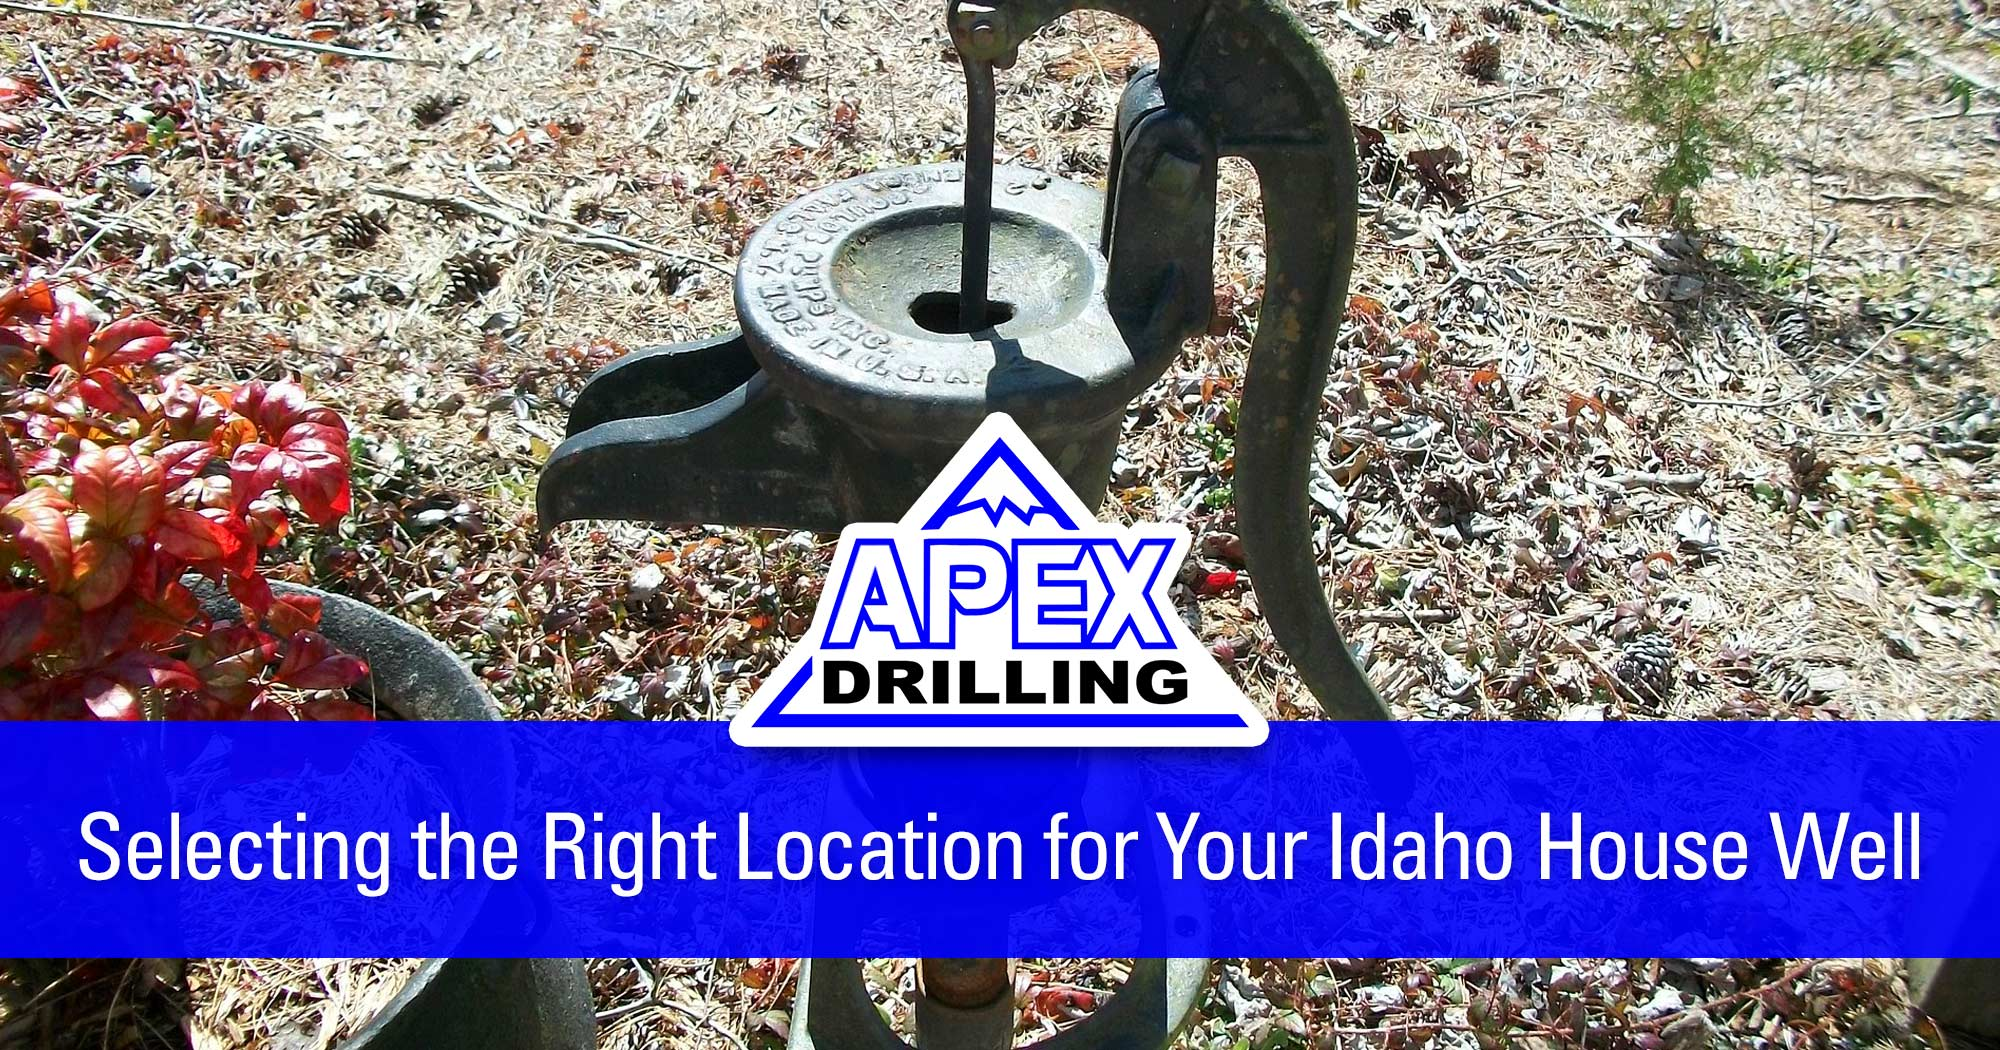 Selecting the Right Location for Your Idaho House Well